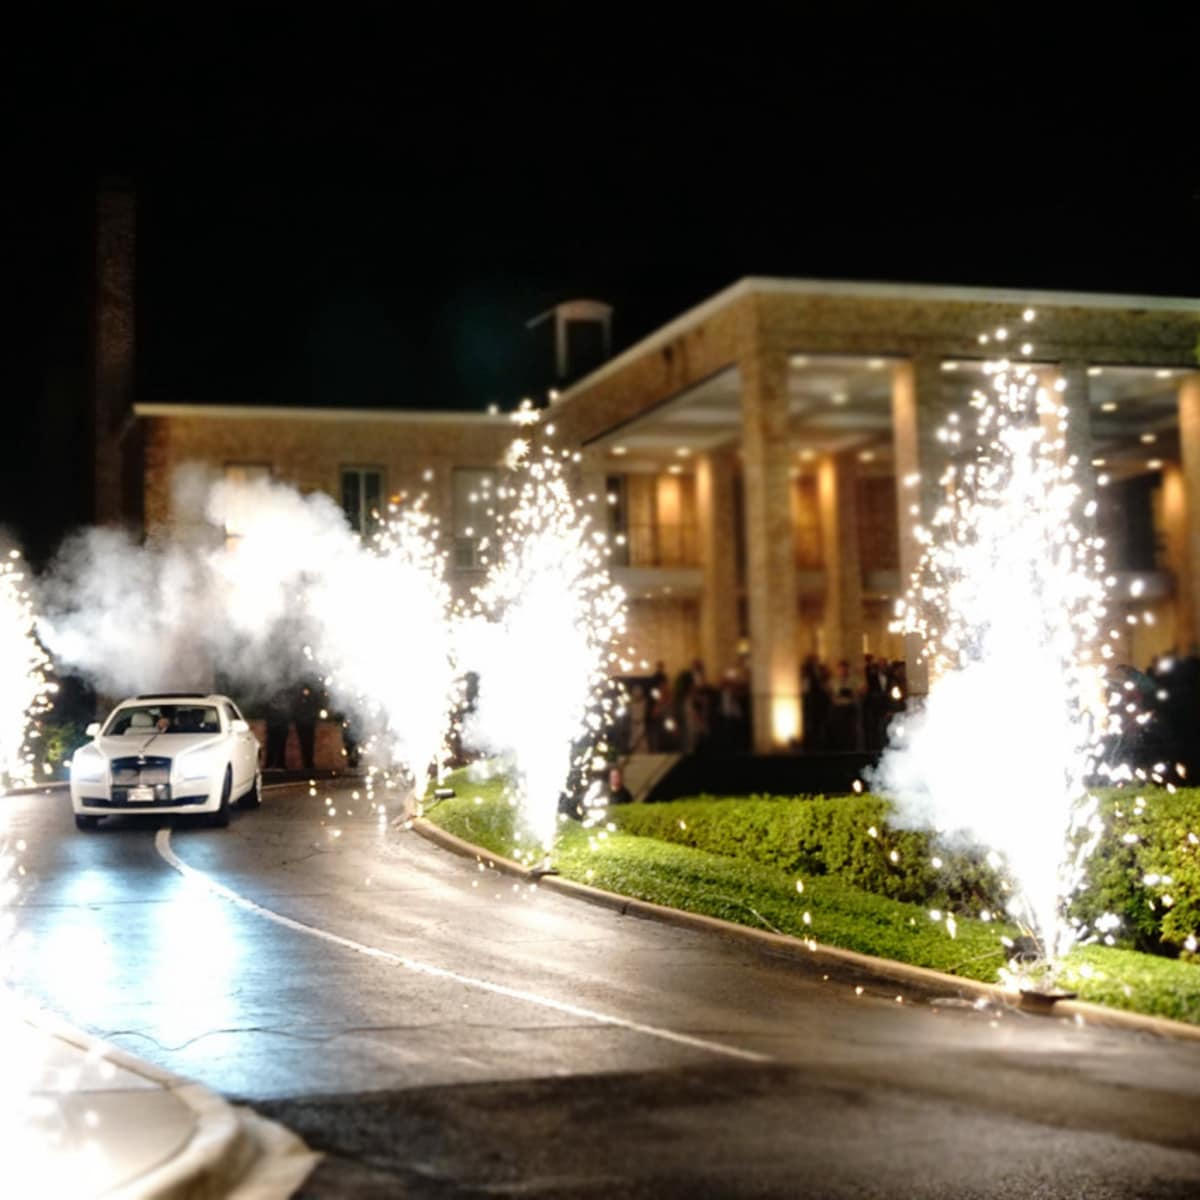 Houston, Chita Johnson wedding, June 2016, fireworks